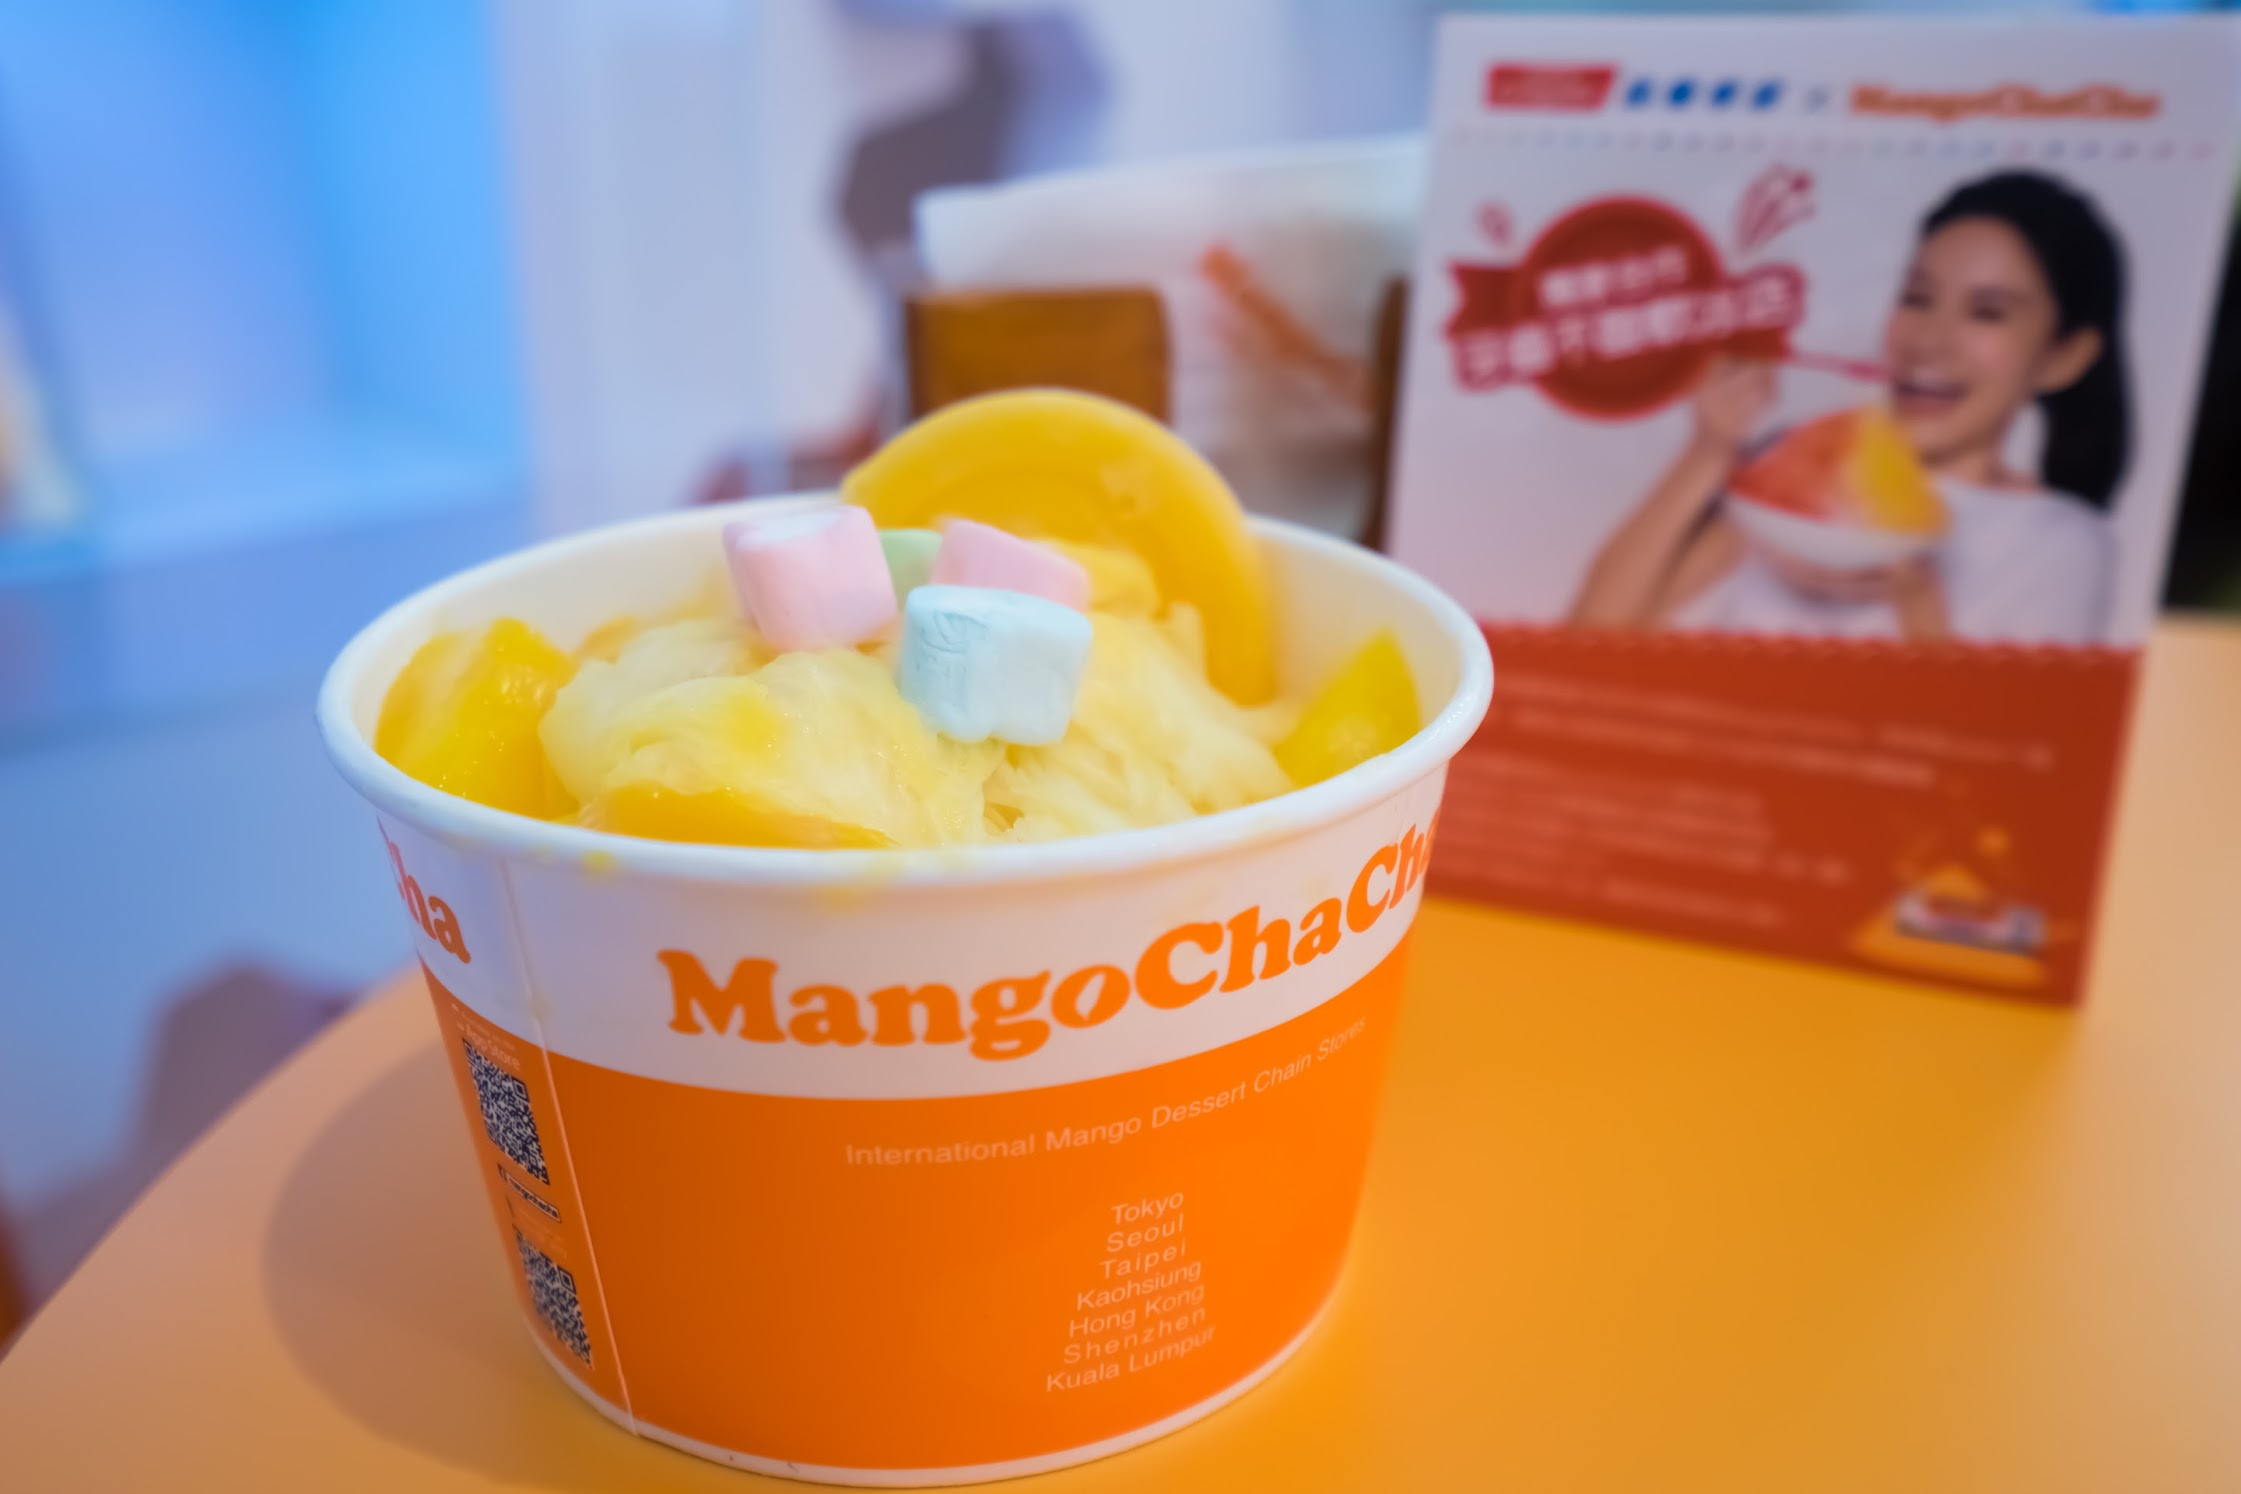 Taipei 101 ice shavings with mangoes